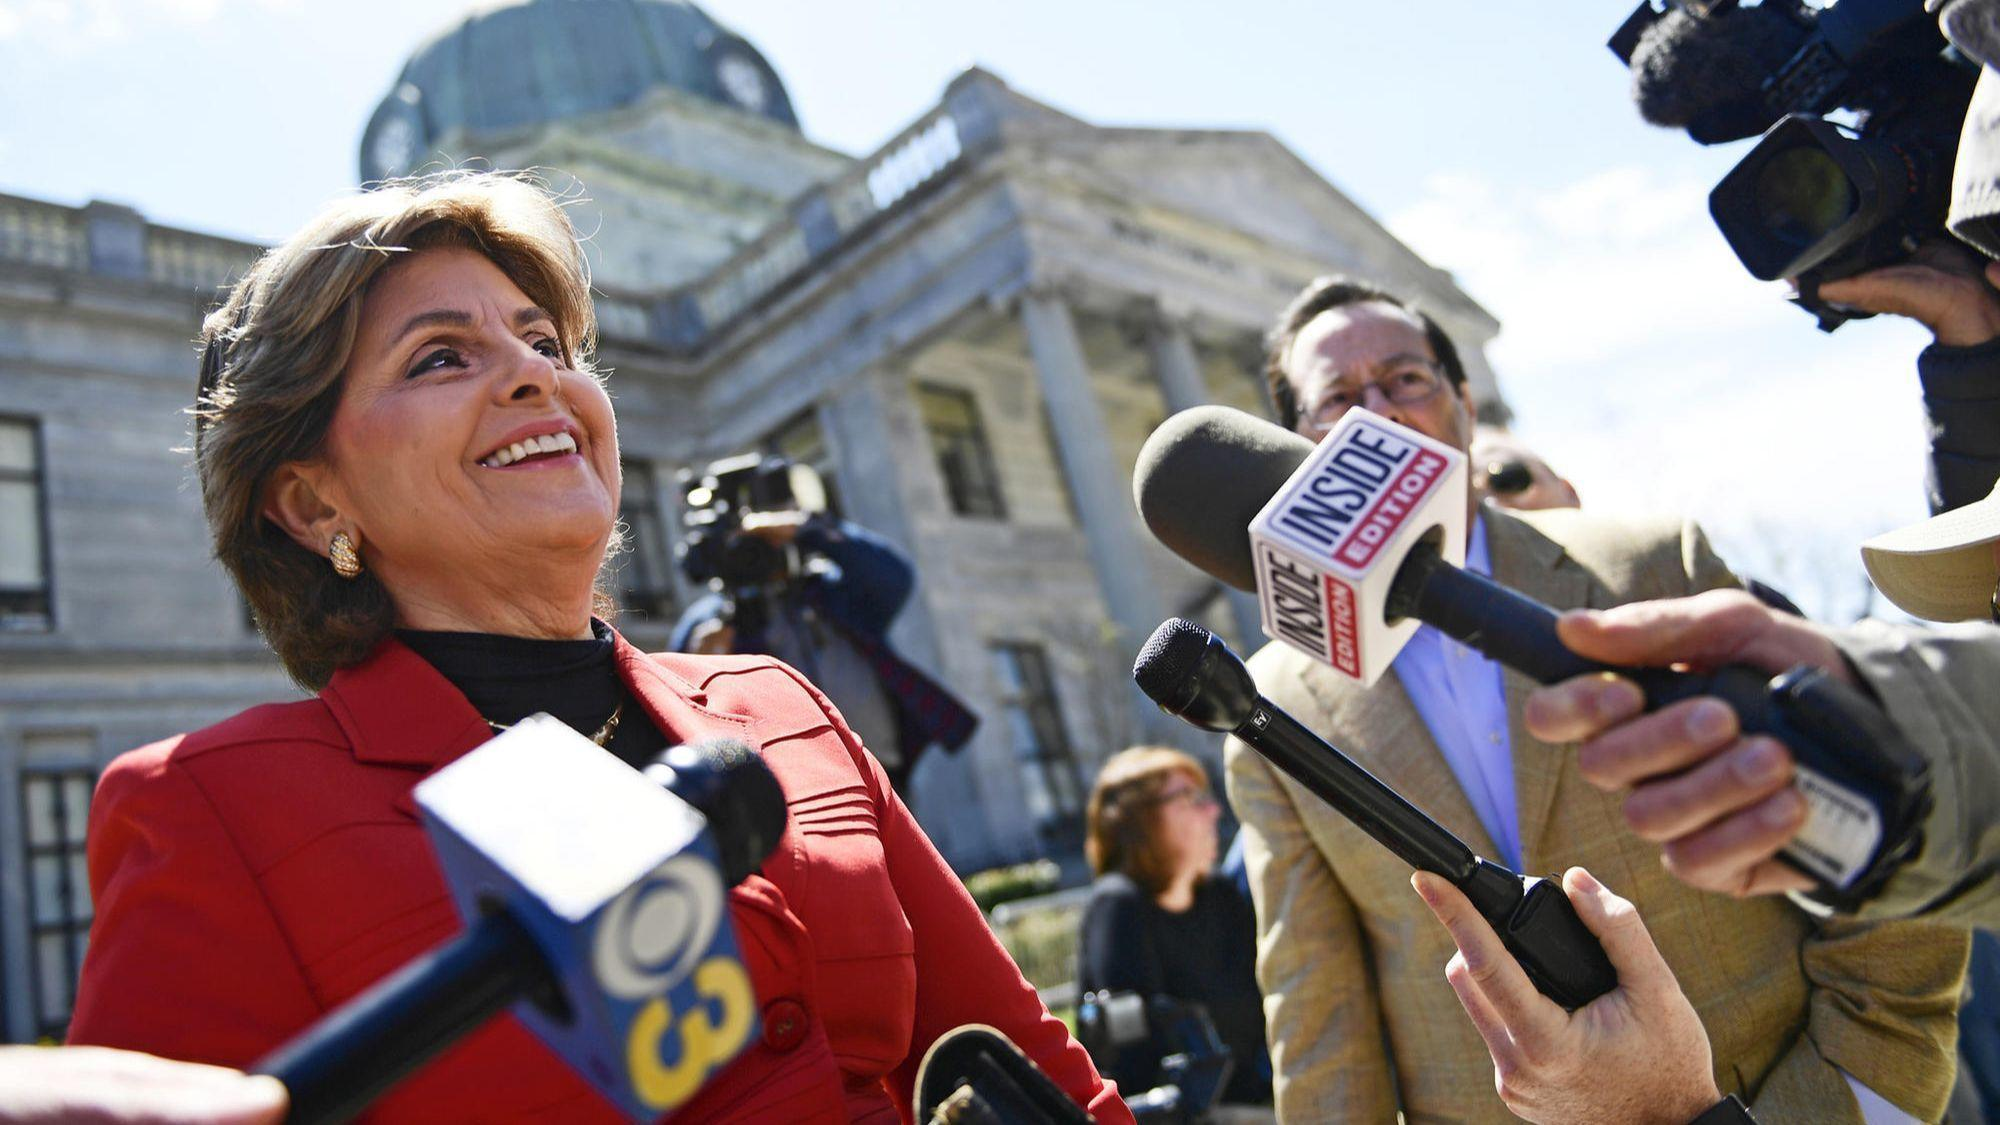 Gloria Allred on Bill Cosby verdict: 'Justice has been done